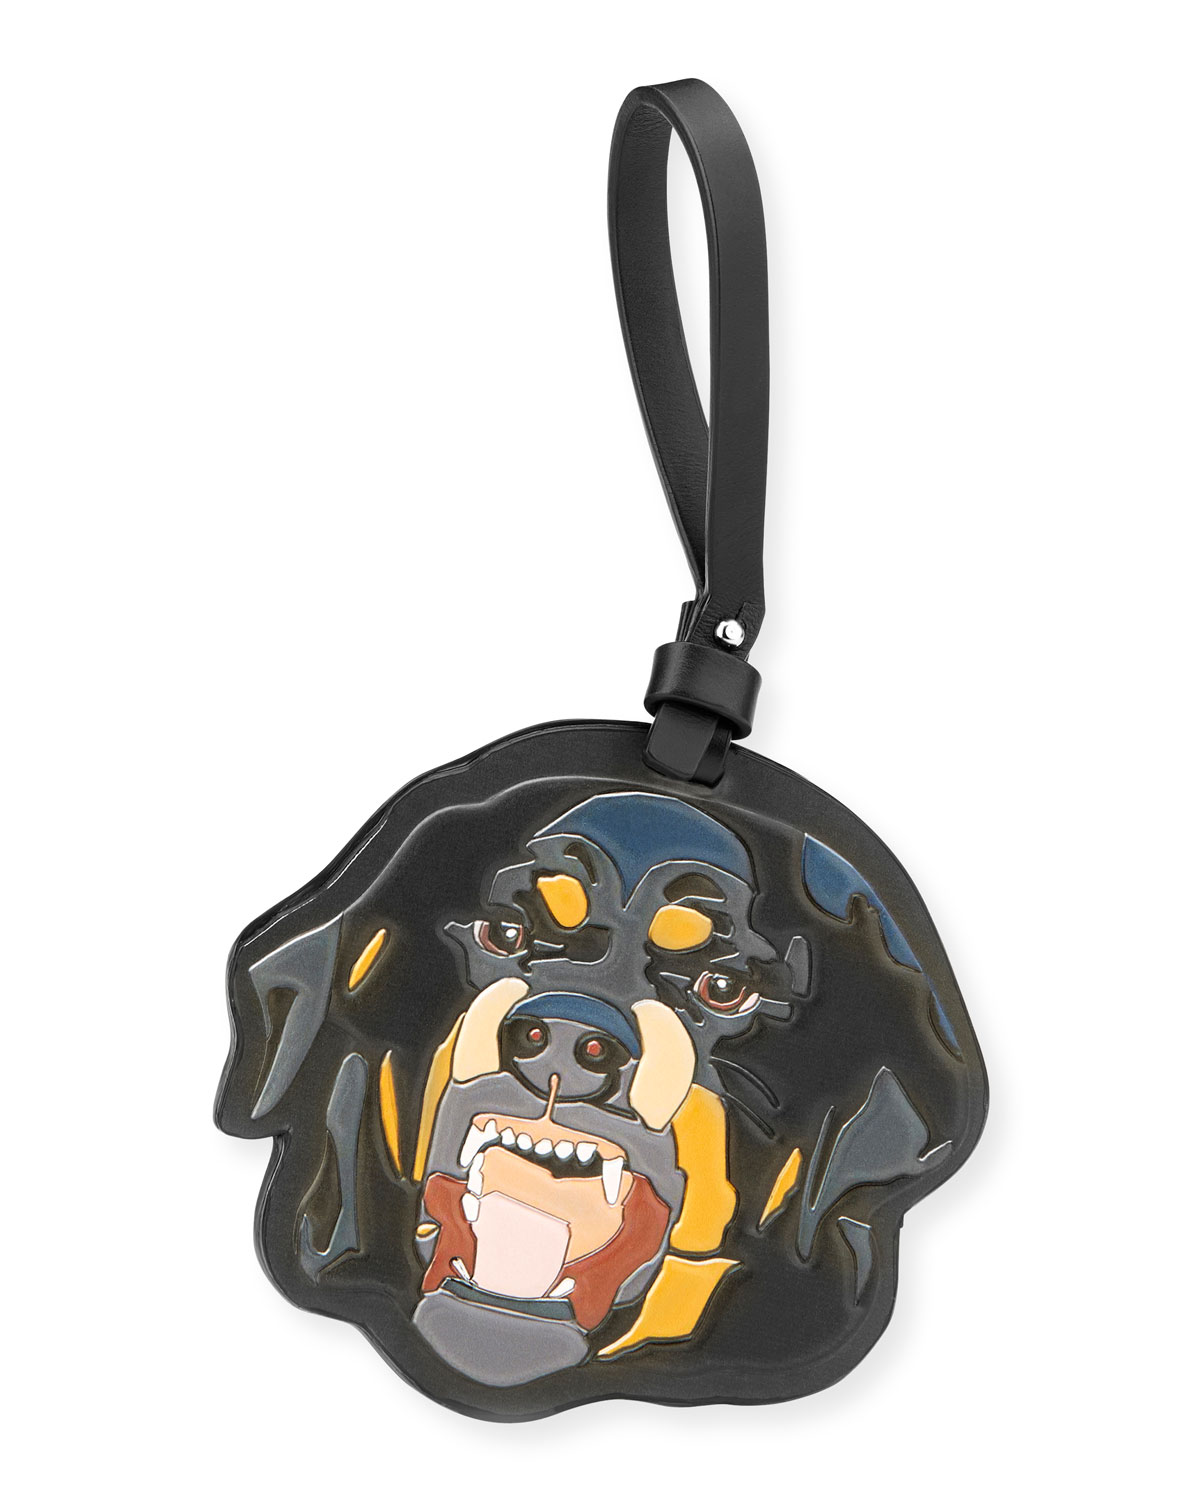 f5ce11982a Givenchy Men s Leather Rottweiler Charm for Bag or Briefcase